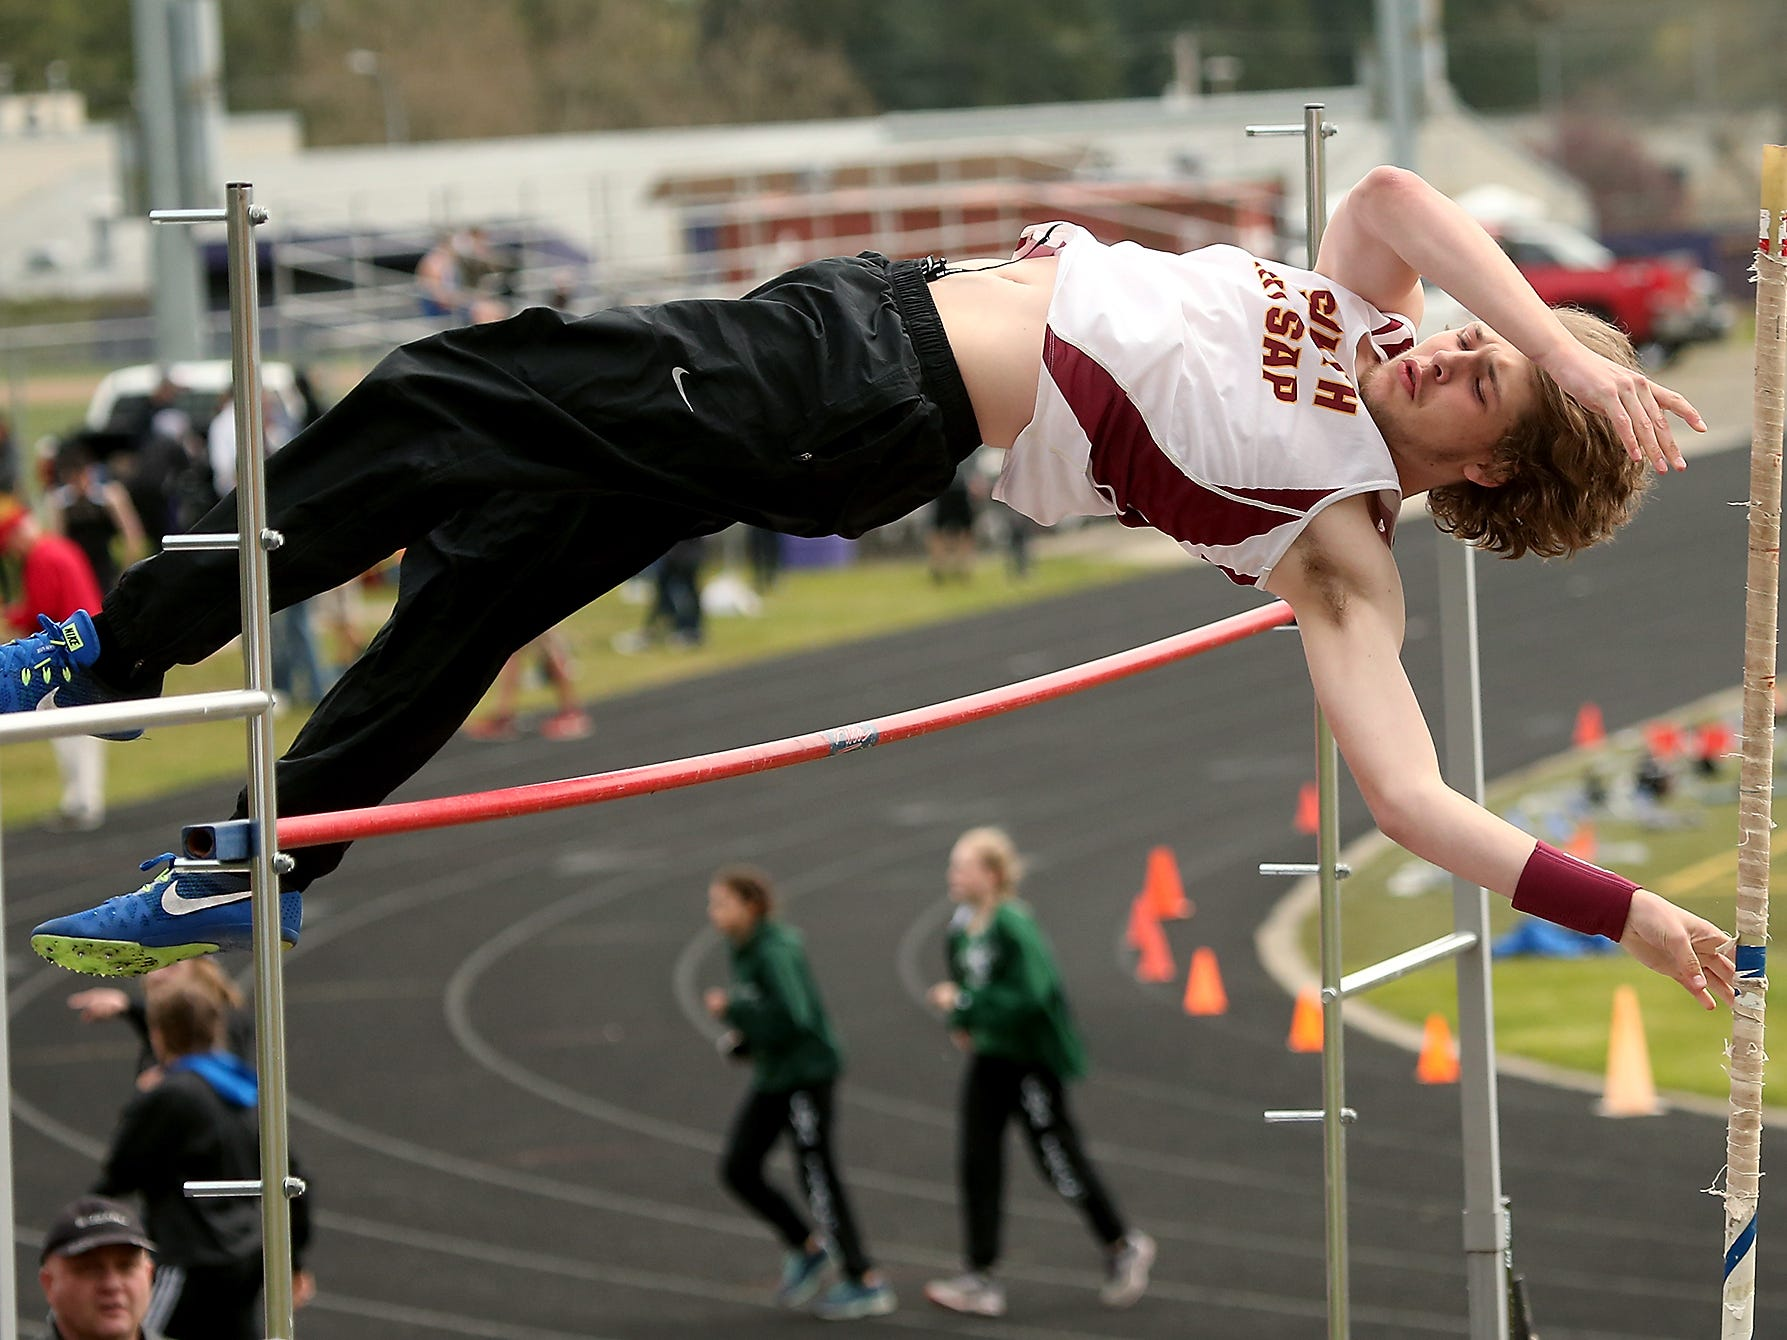 South Kitsap' pole vaulter Brett Wanner soars over the bar during the Lil' Norway Invitational on Saturday, April 21, 2018.